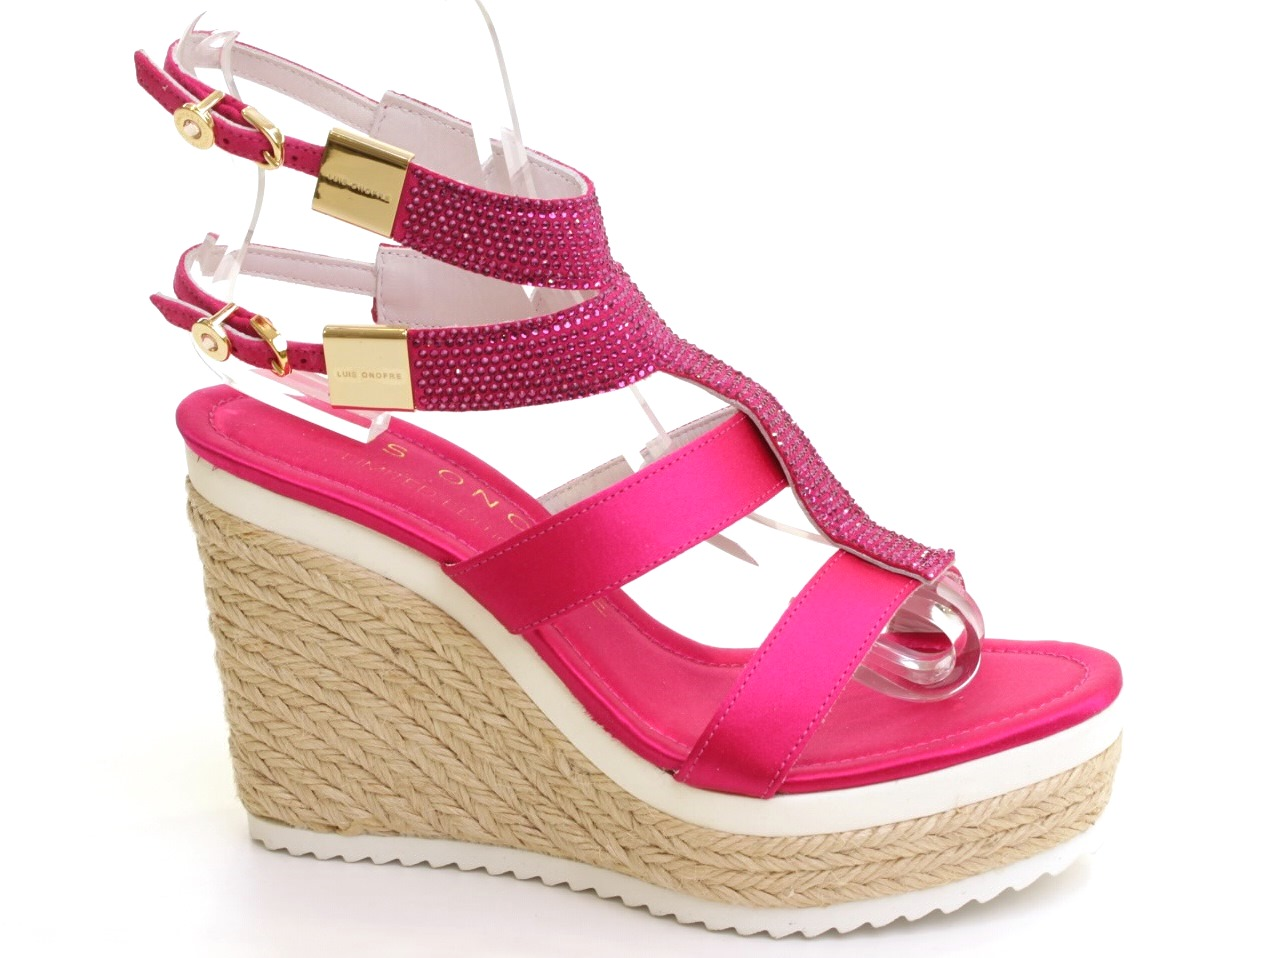 Wedge Sandals Luis Onofre - 293 3258